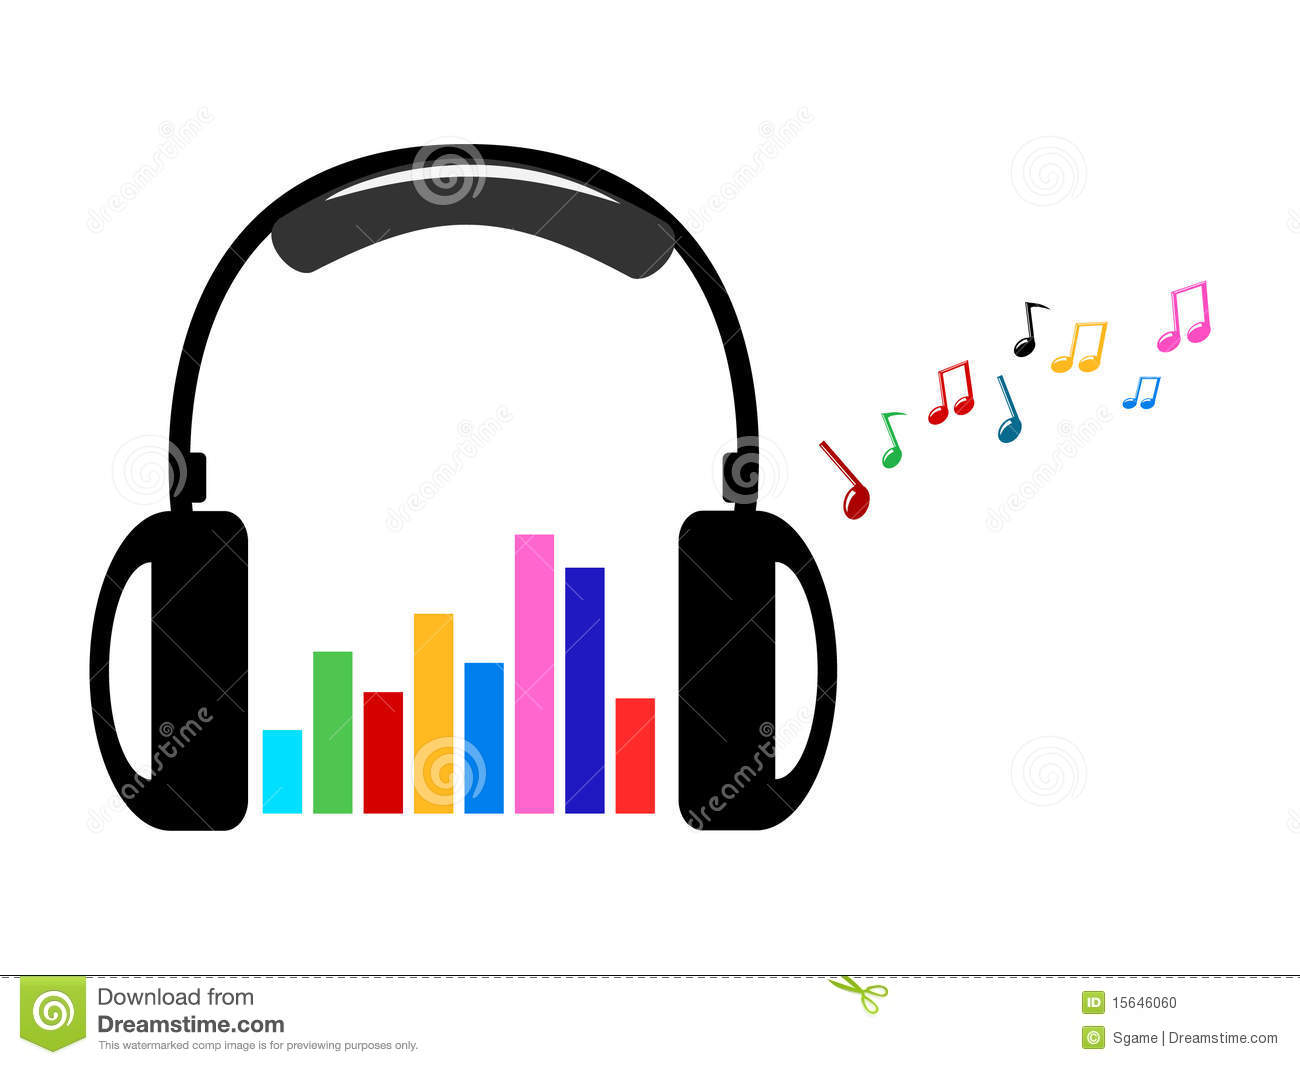 Headphone clipart music note Panda Free Images Notes Music